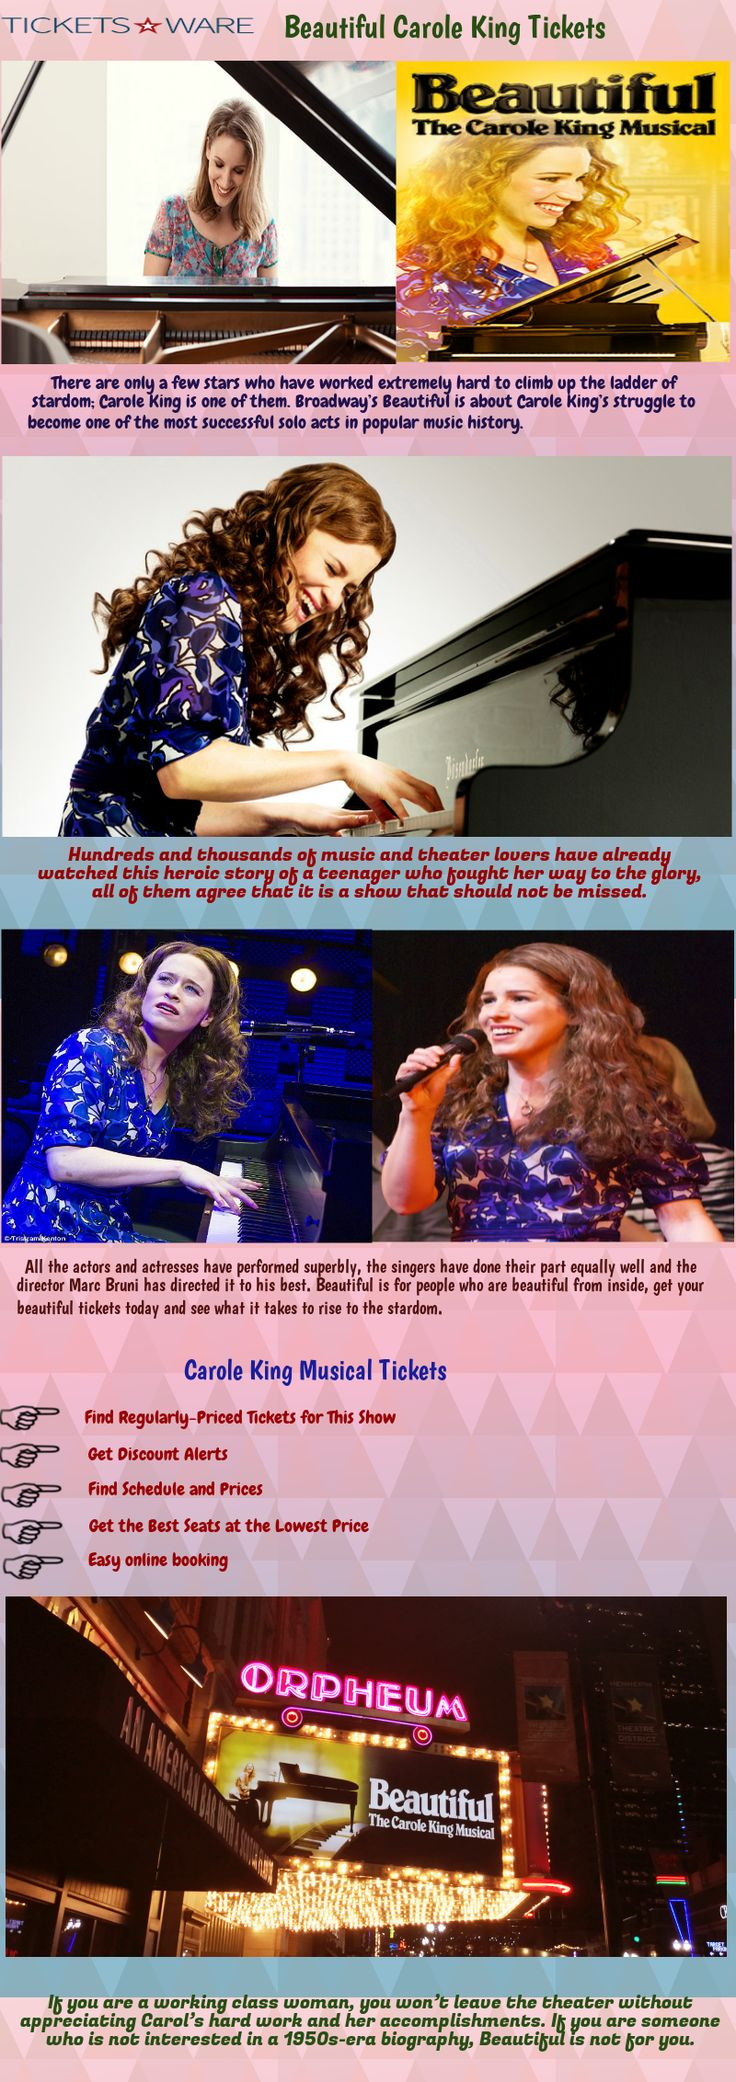 There are only a few stars who have worked extremely hard to climb up the ladder of stardom; Carole King is one of them. Broadway's Beautiful is about Carole King's struggle to become one of the most successful solo acts in popular music history. Visit Us https://www.ticketsware.com/beautiful-the-carole-king-musical-tickets